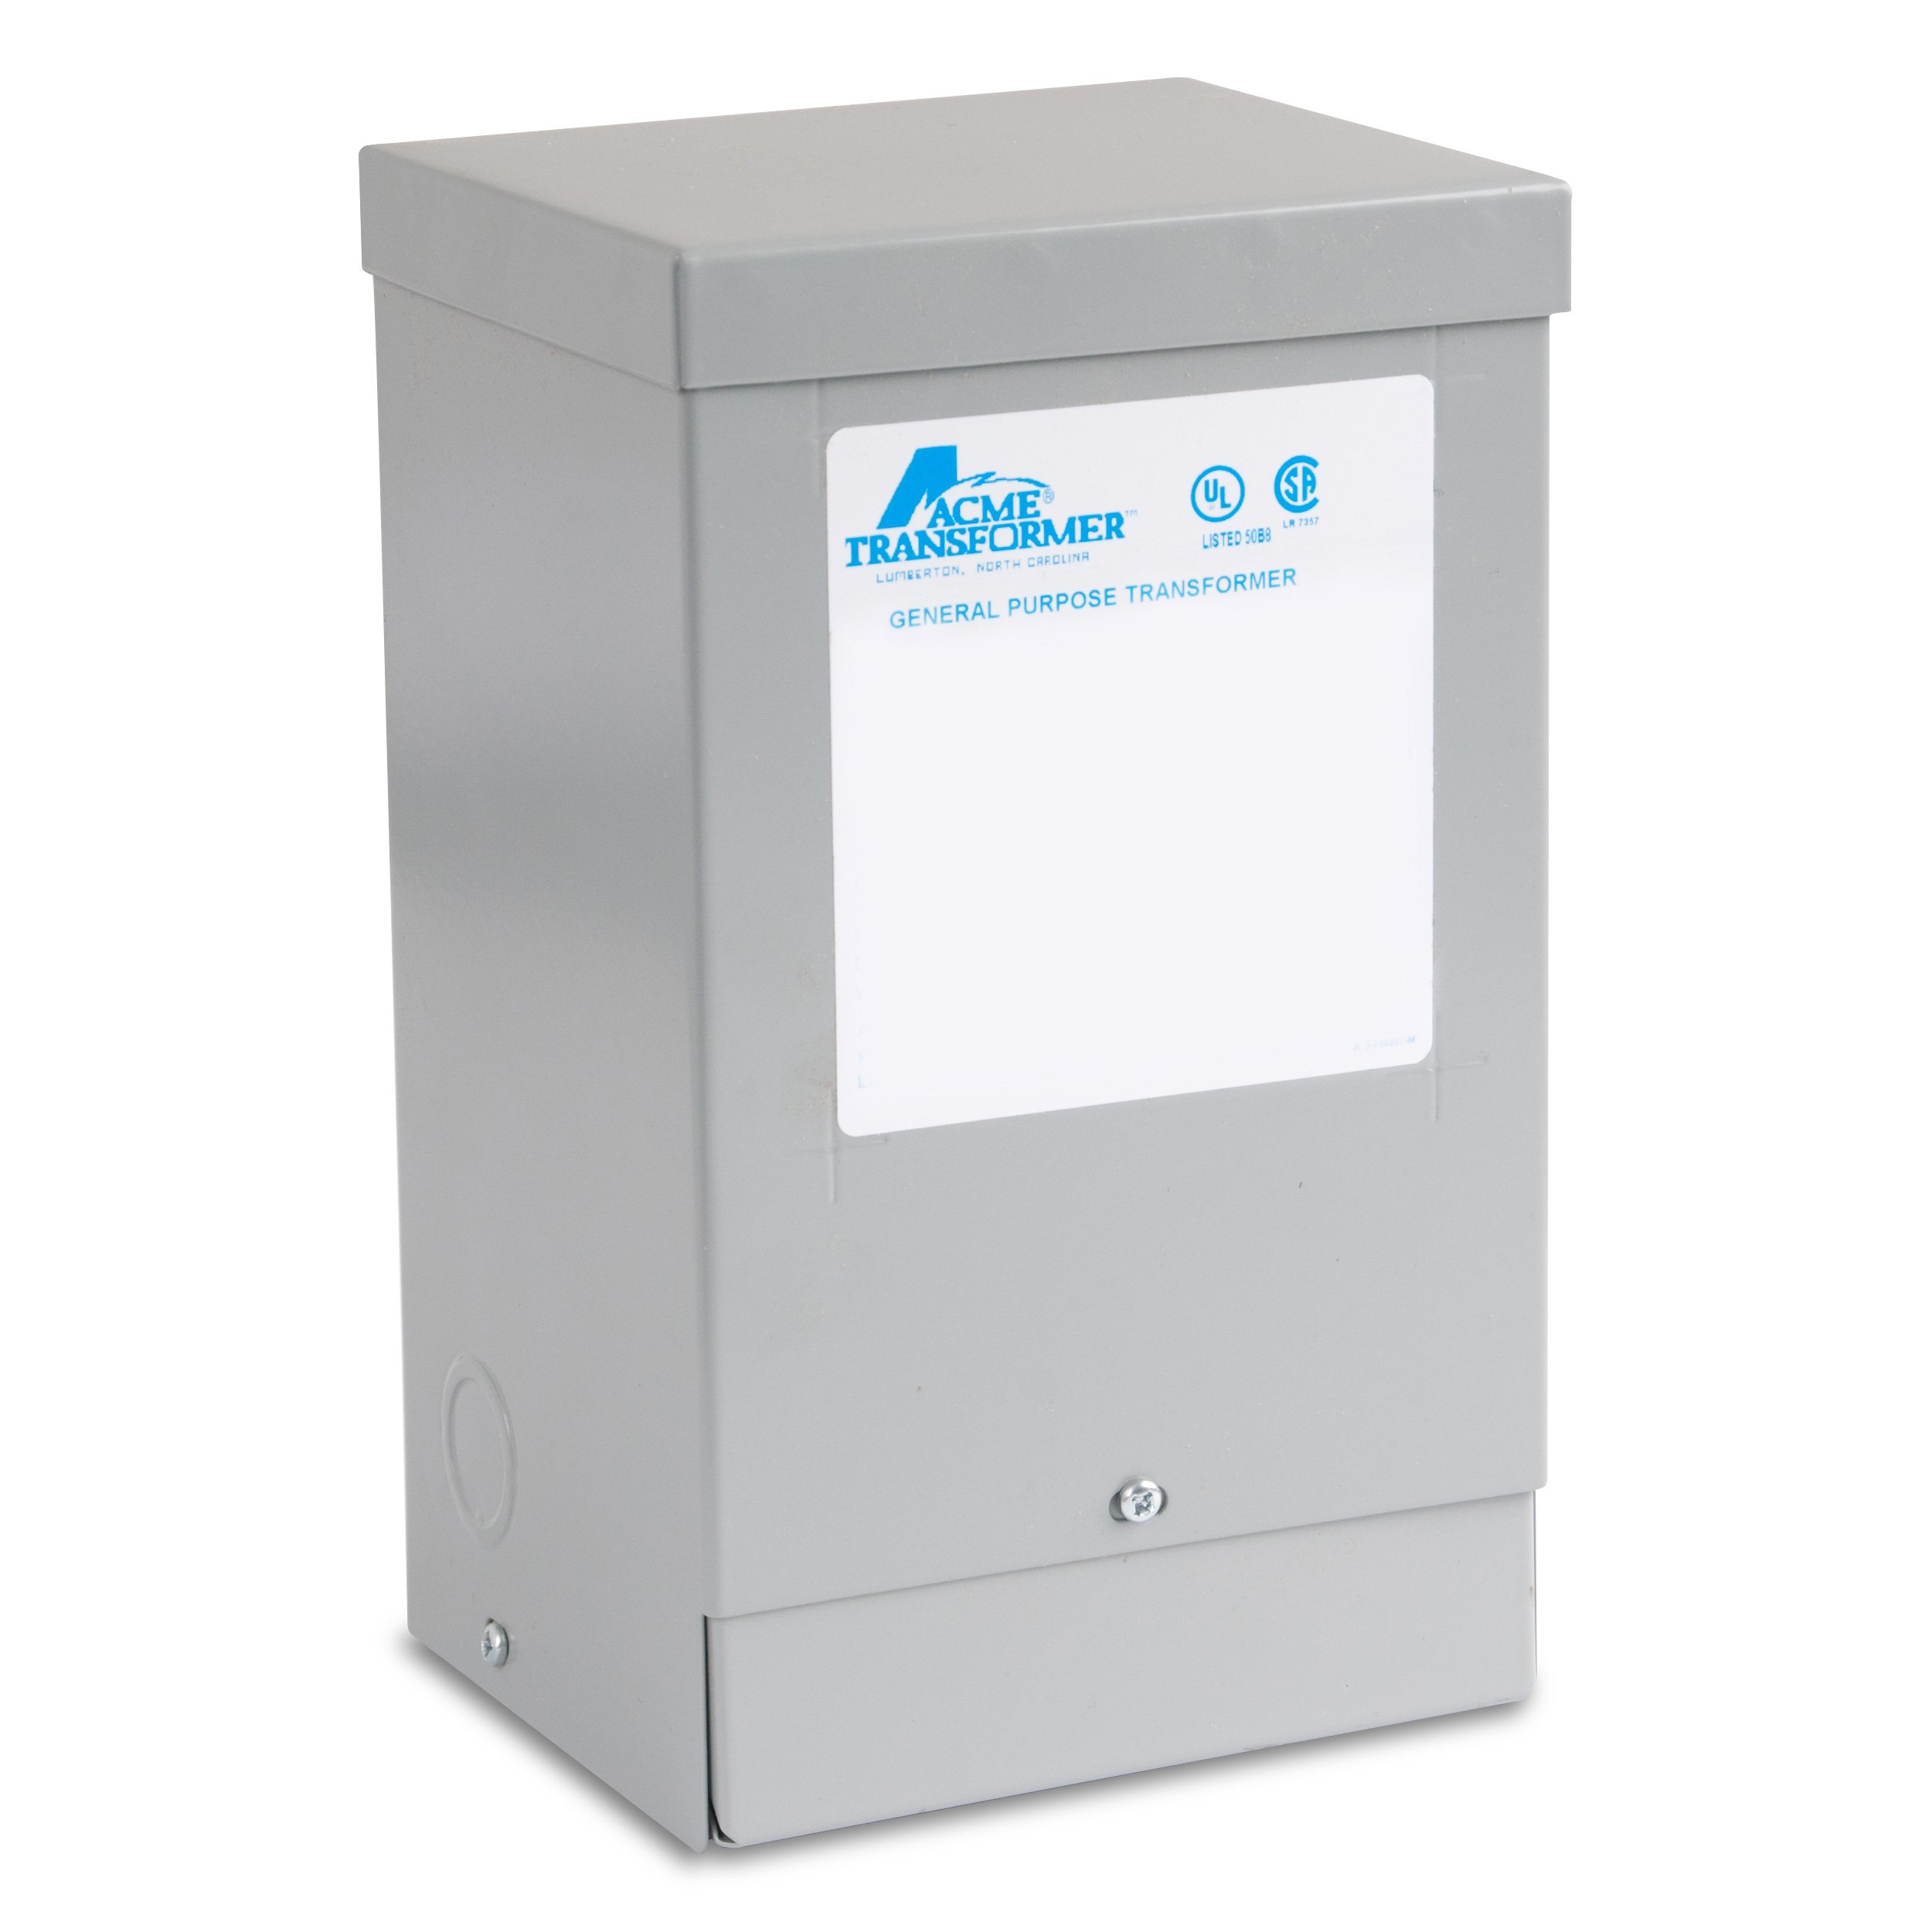 Acme Electric T181052 Buck-Boost Transformer, 1 Phase, 60 Hz, 0.75 kVA, 120 x 240V Input, 12/24V Output, Steel by Acme Electric